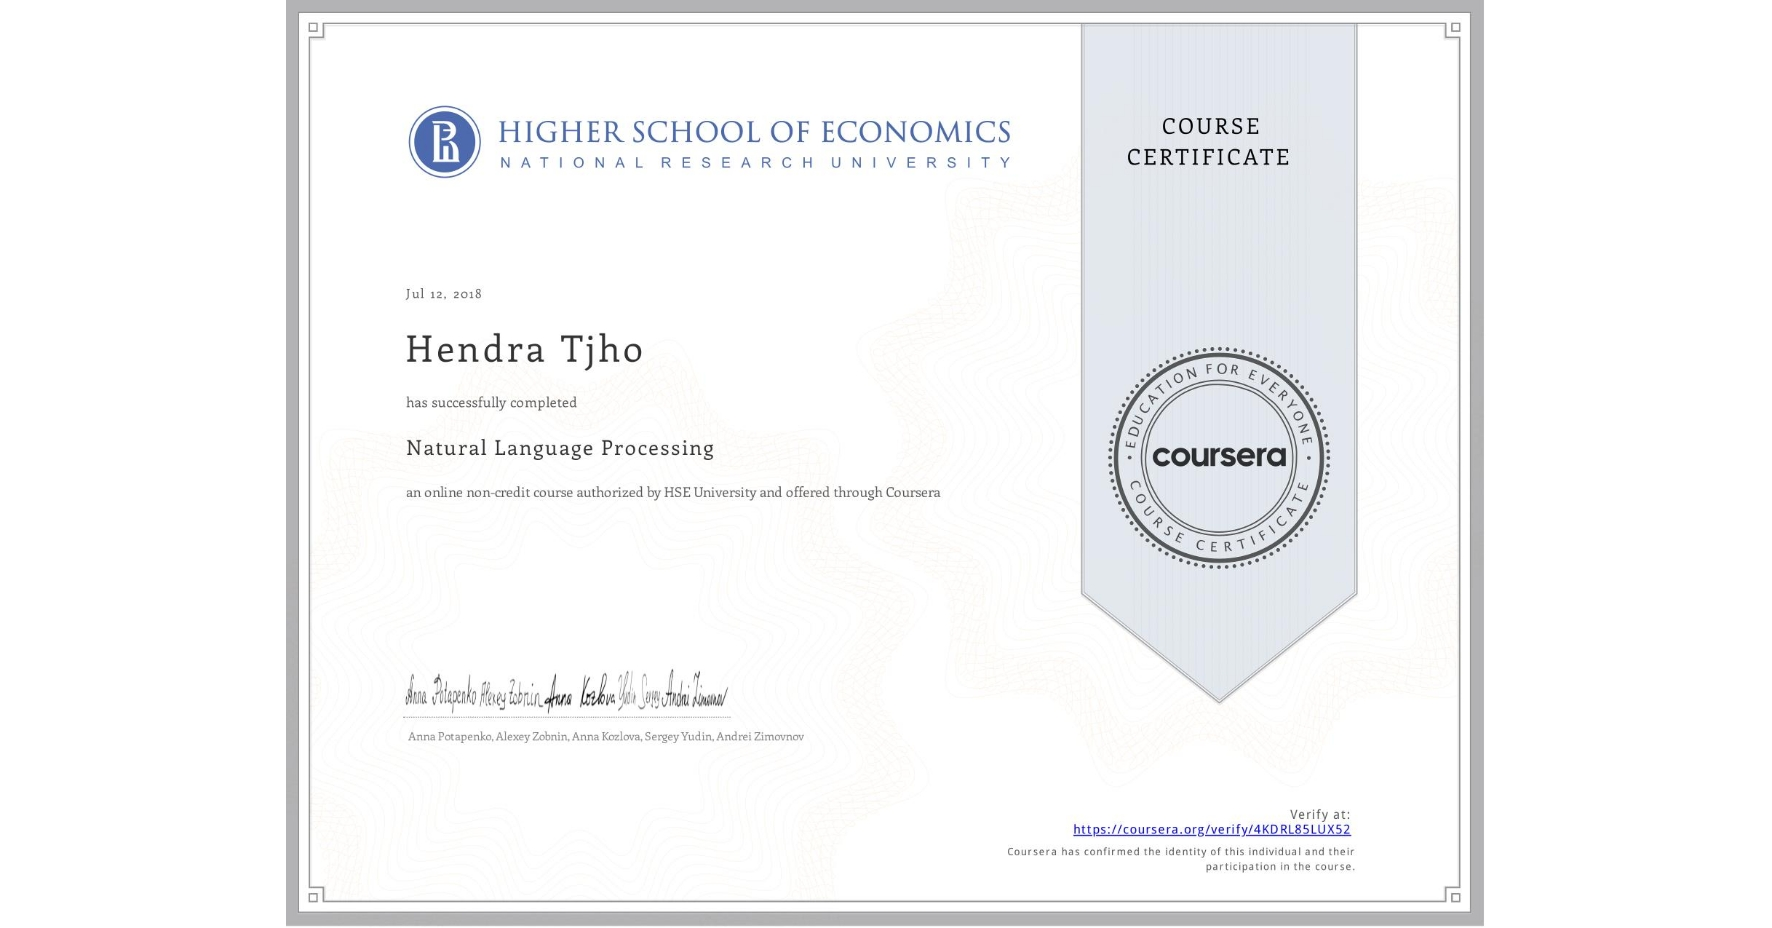 View certificate for Hendra Tjho, Natural Language Processing, an online non-credit course authorized by National Research University Higher School of Economics and offered through Coursera